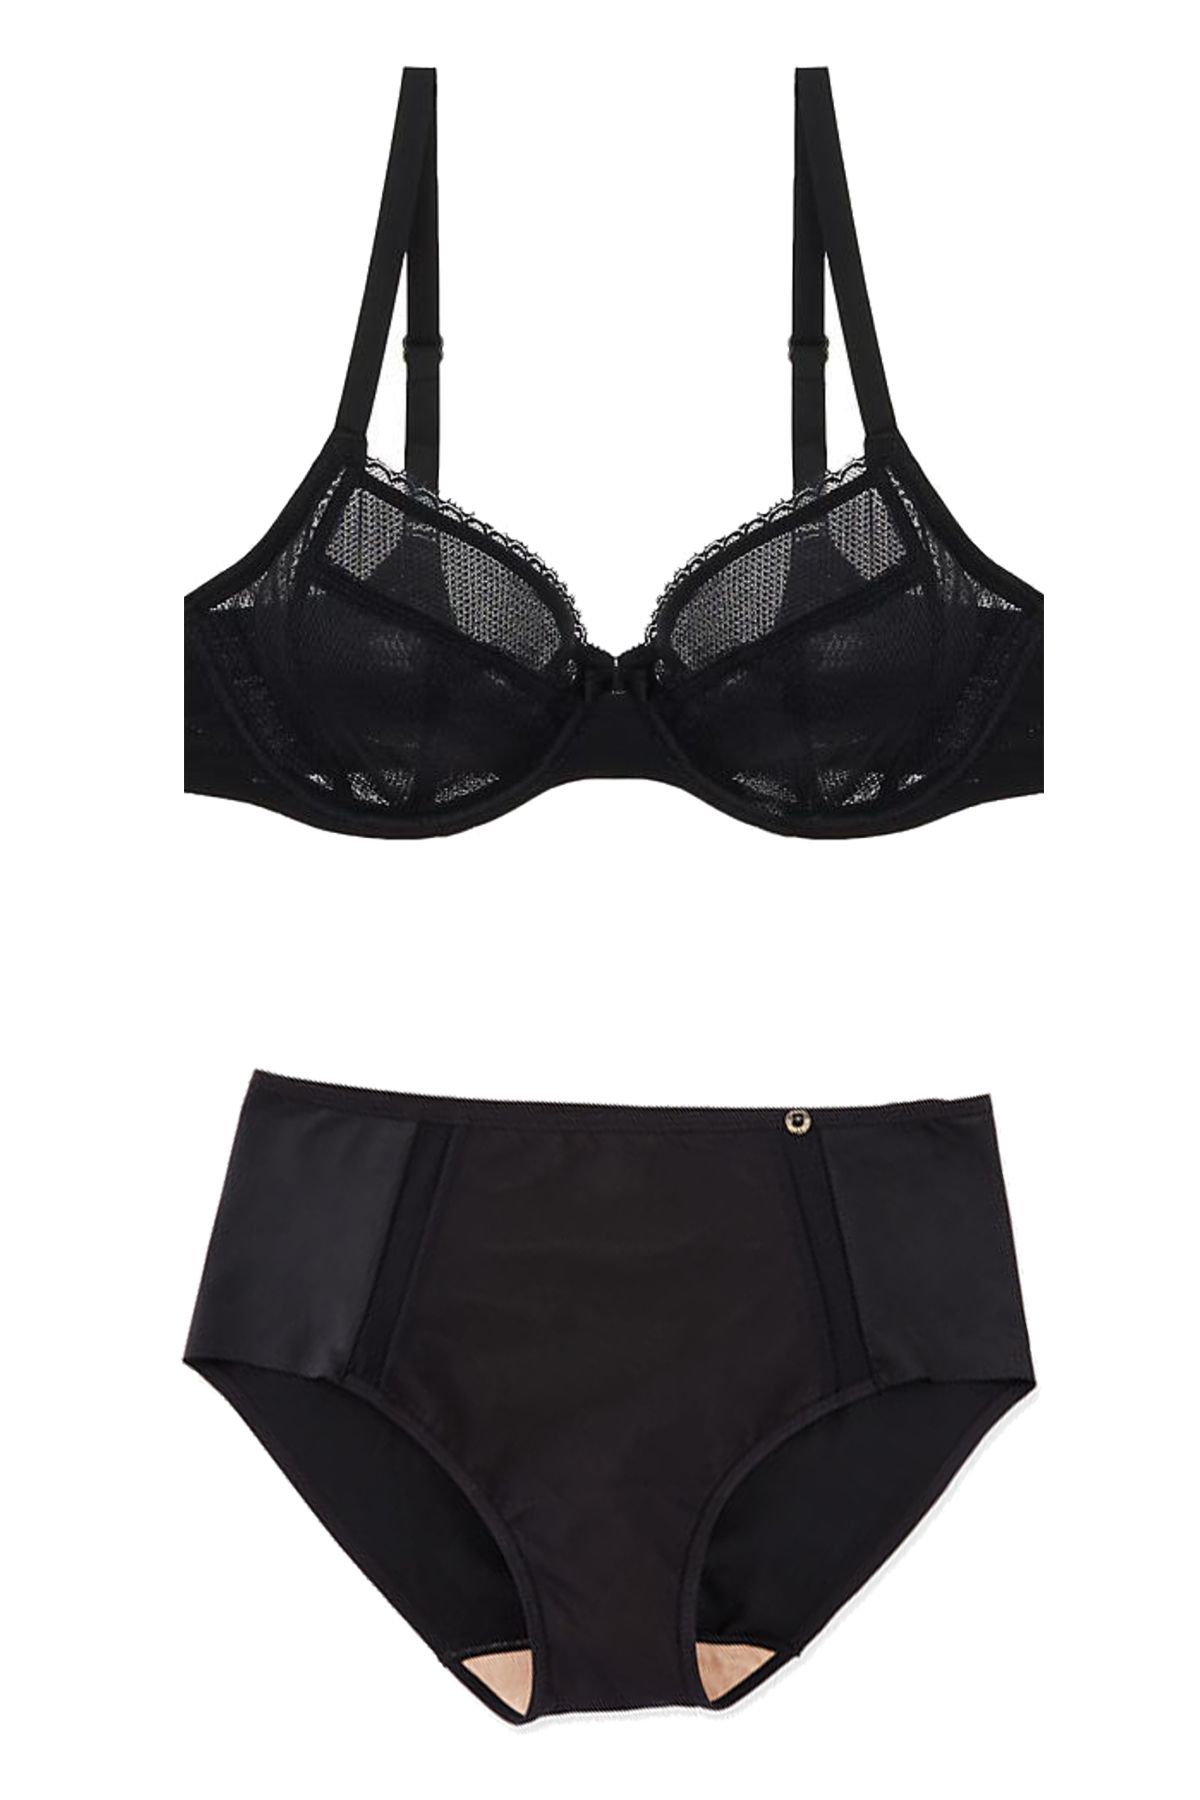 07b74e6ca4e Top available in sizes 32A to 36C  Bottom in French sizes 38 to 44.